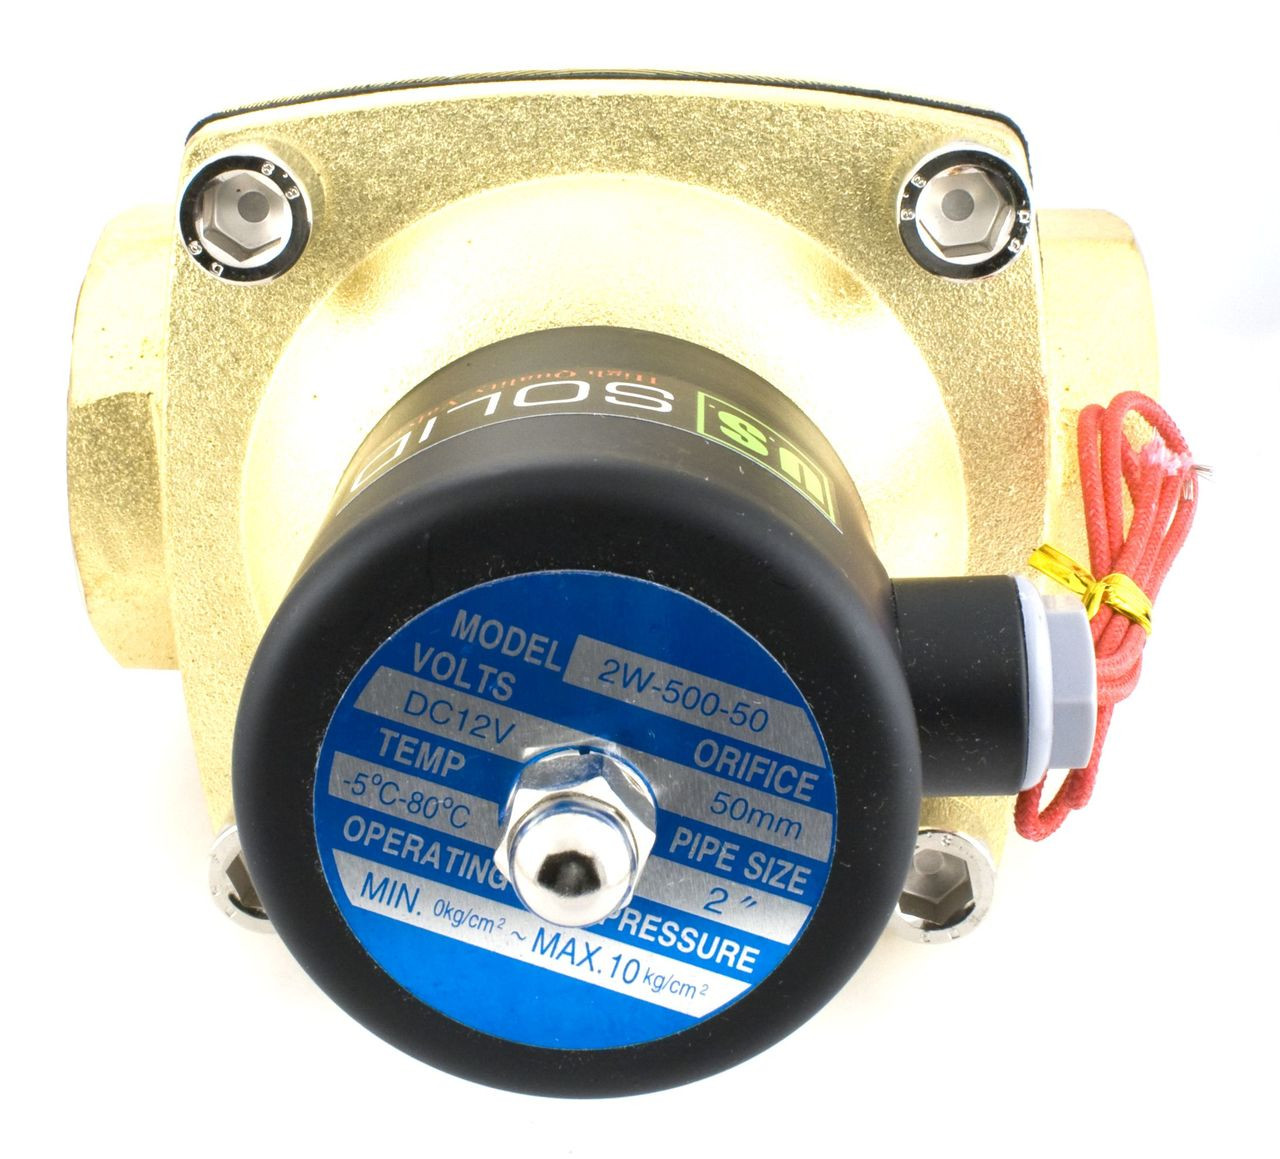 """USSOLID Electric Solenoid Valve- 2"""" 12V DC Solenoid Valve Brass Body Normally Closed, VITON SEAL"""